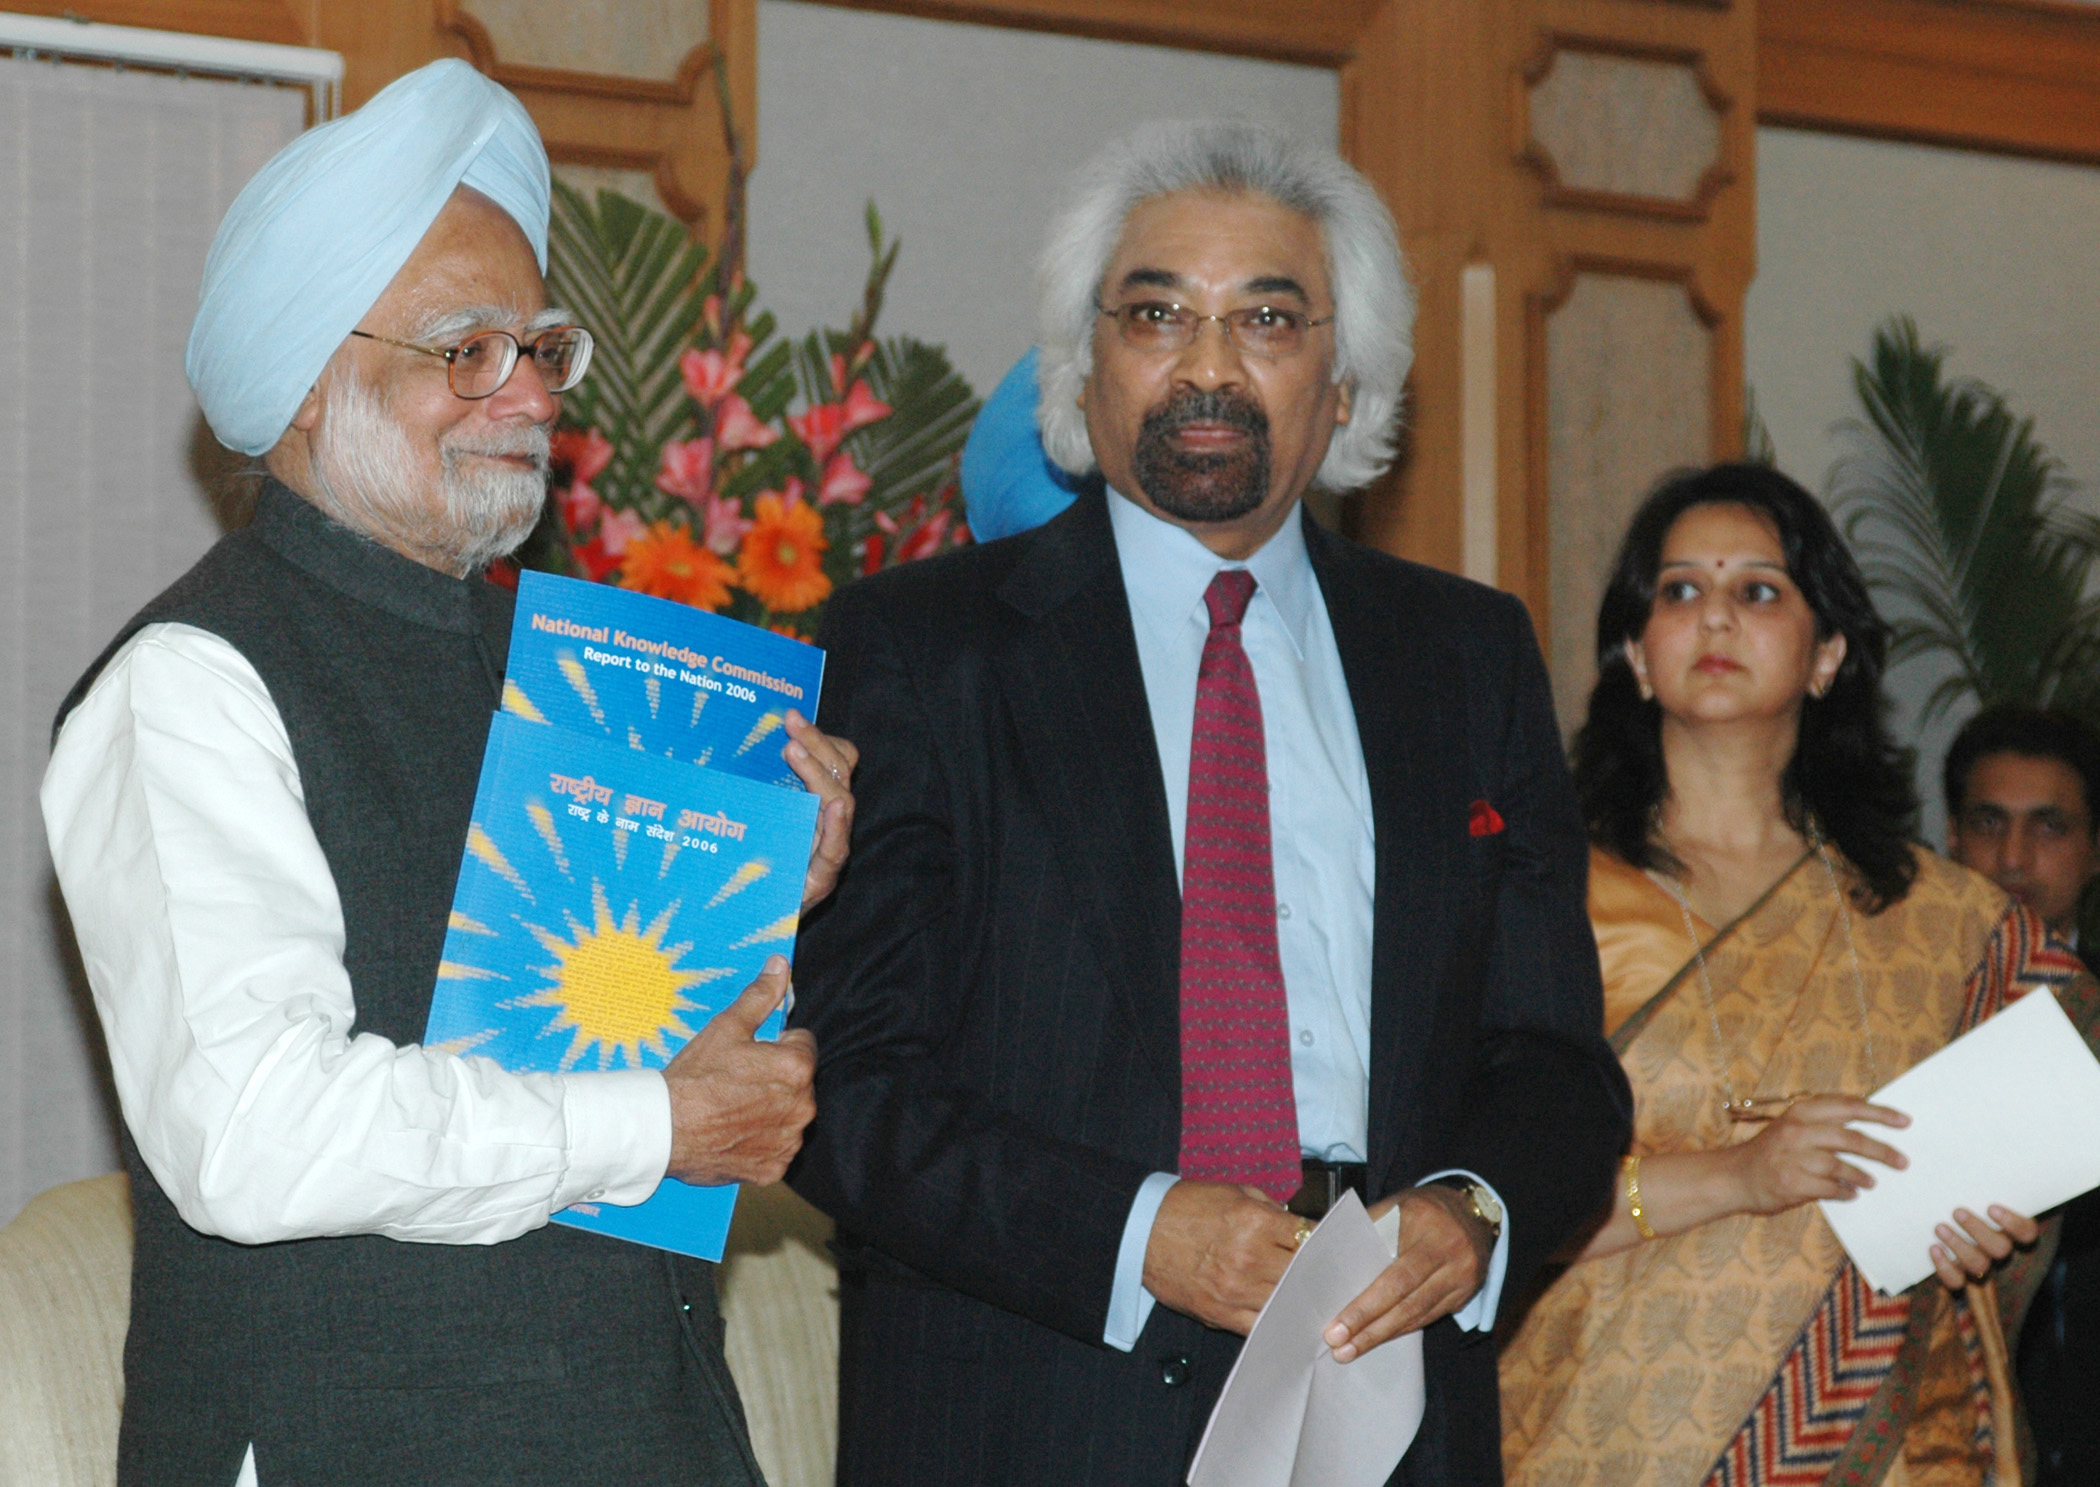 The Prime Minister Dr. Manmohan Singh releases the National Knowledge Commission's Report to the Nation 2006, in New Delhi on January 12, 2007